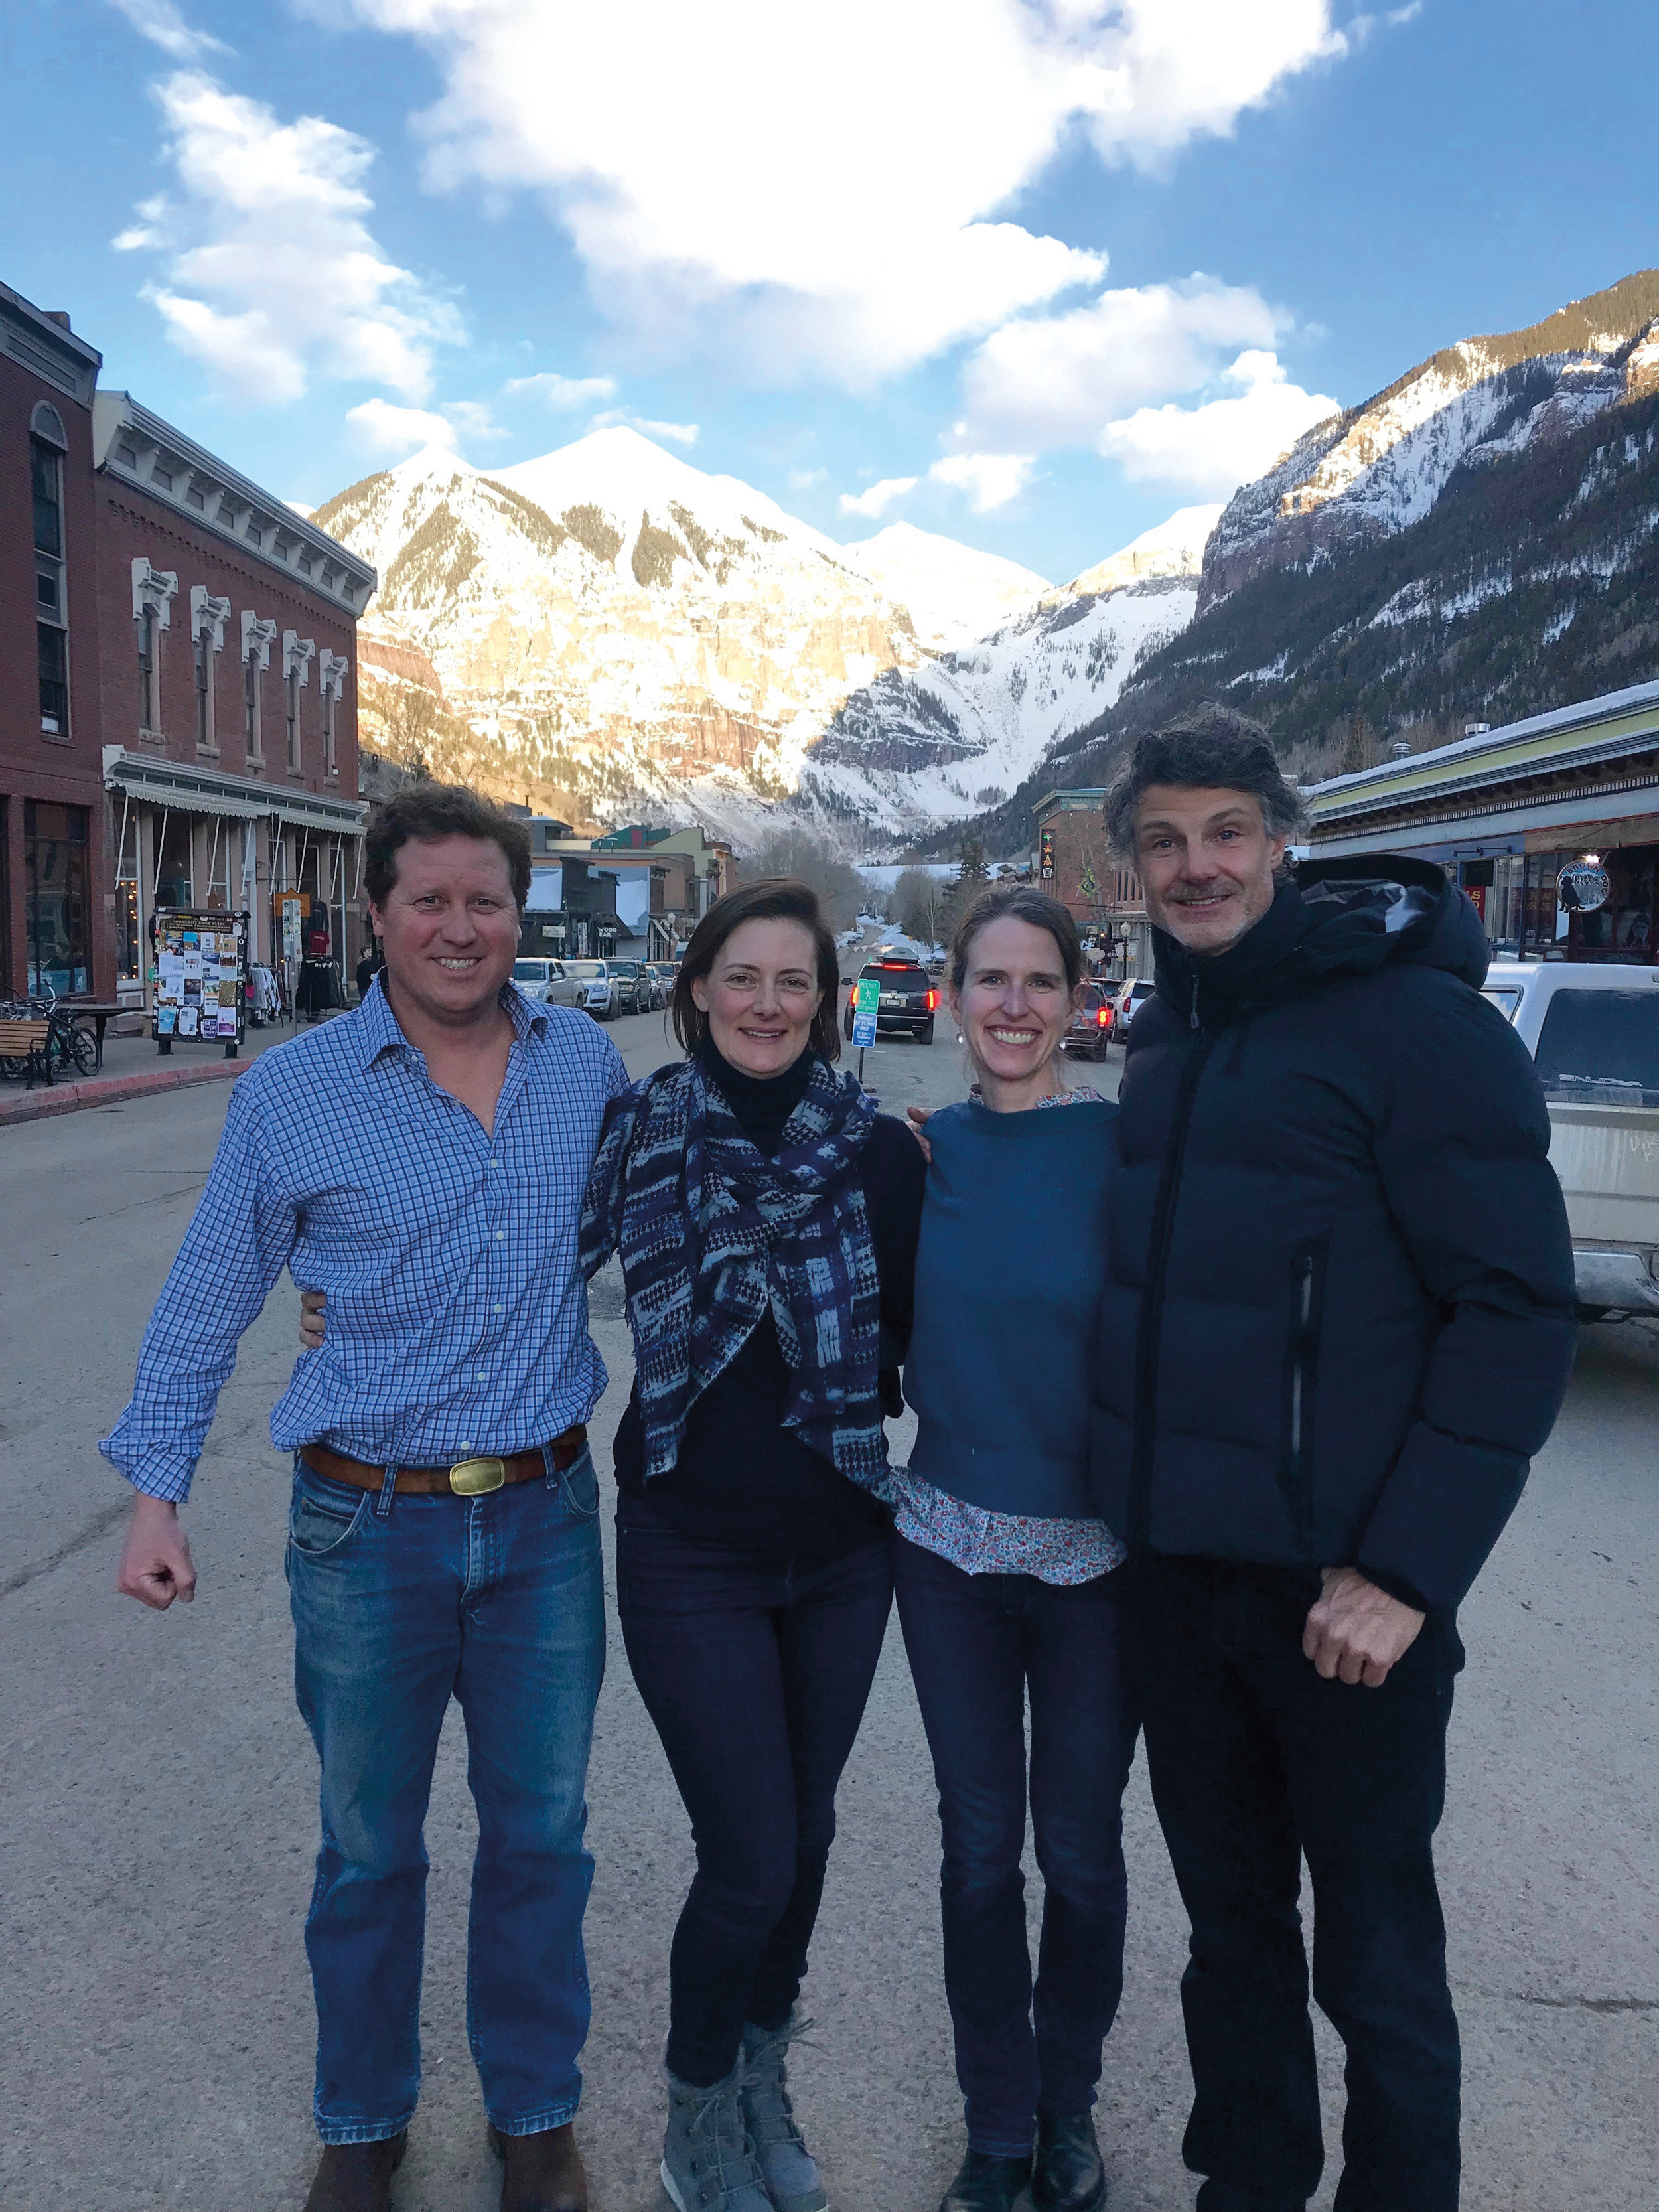 (L. to r.) Formmates from 1990 Chris Chaffin, Mary Tyler Johnson, Emily Lloyd Shaw, and Stratton Lloyd met up in Telluride, Colo.